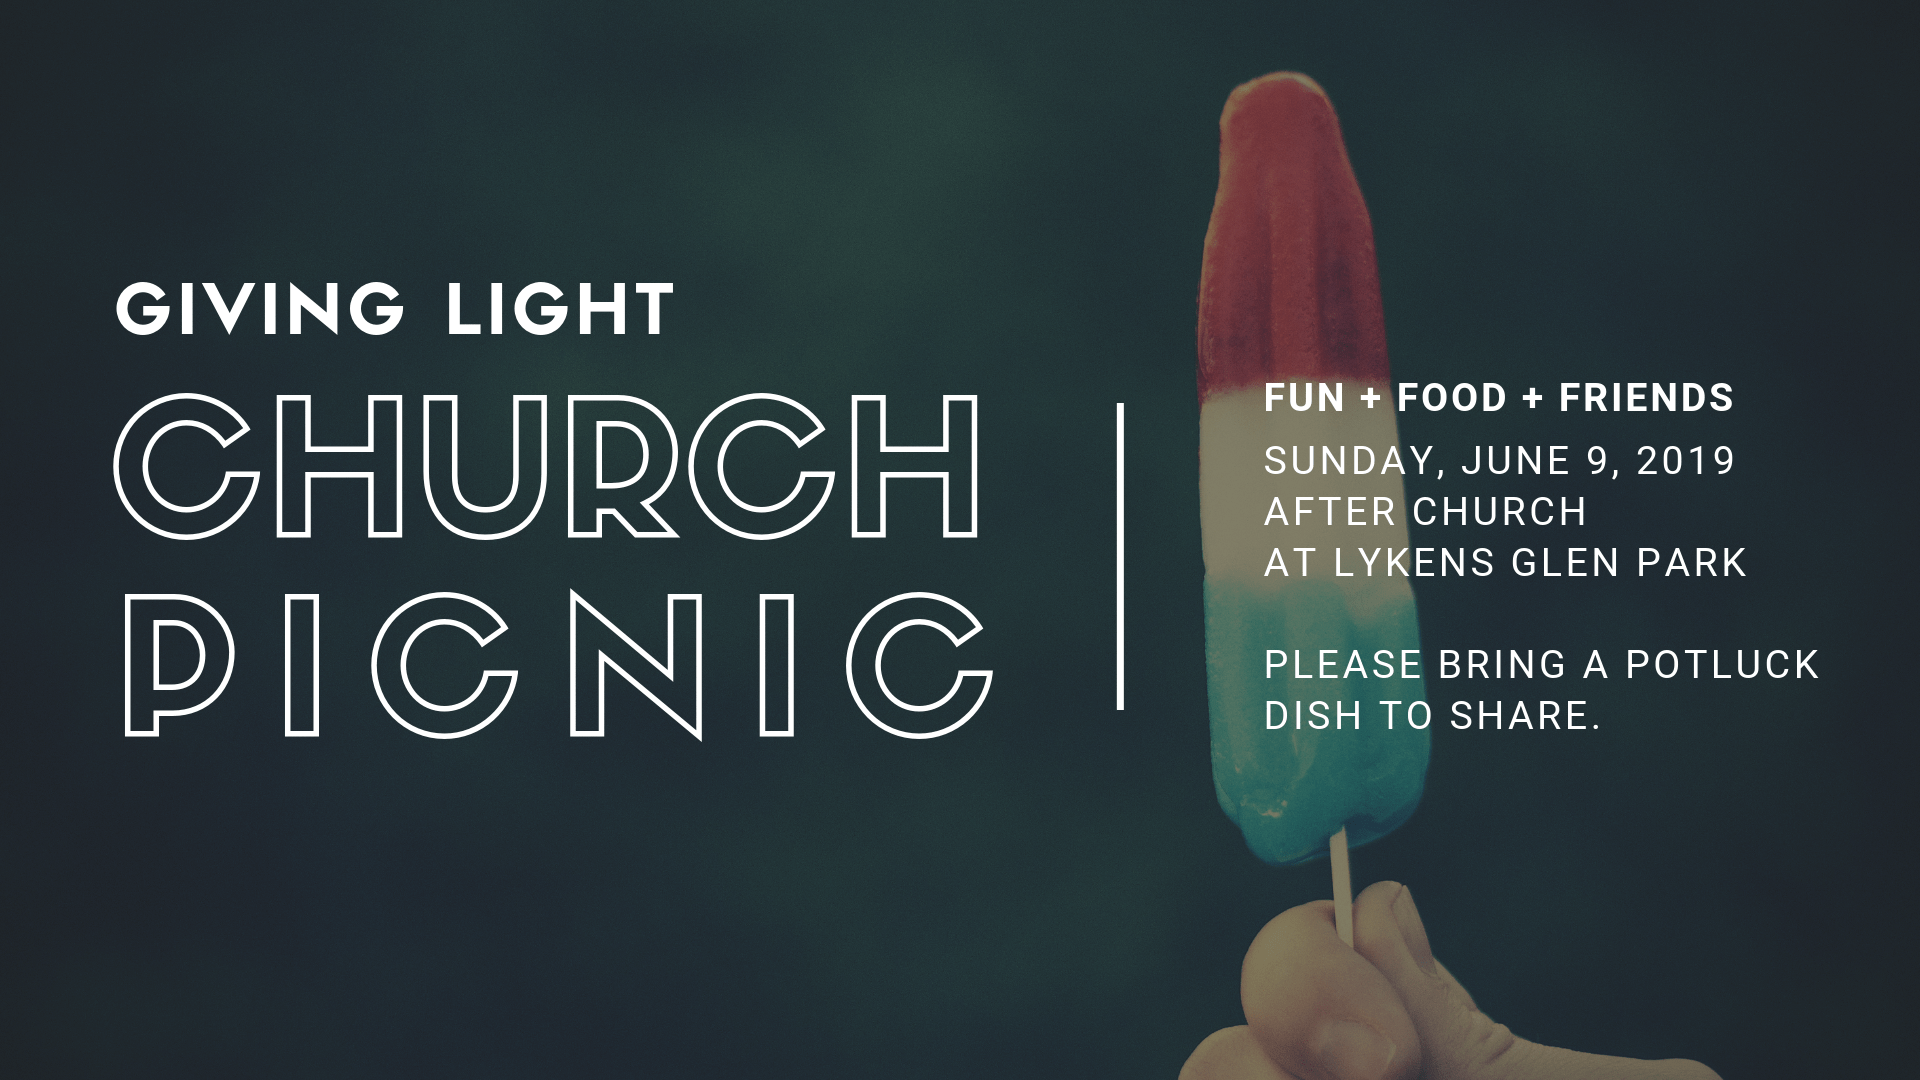 GIVING LIGHT CHURCH PICNIC